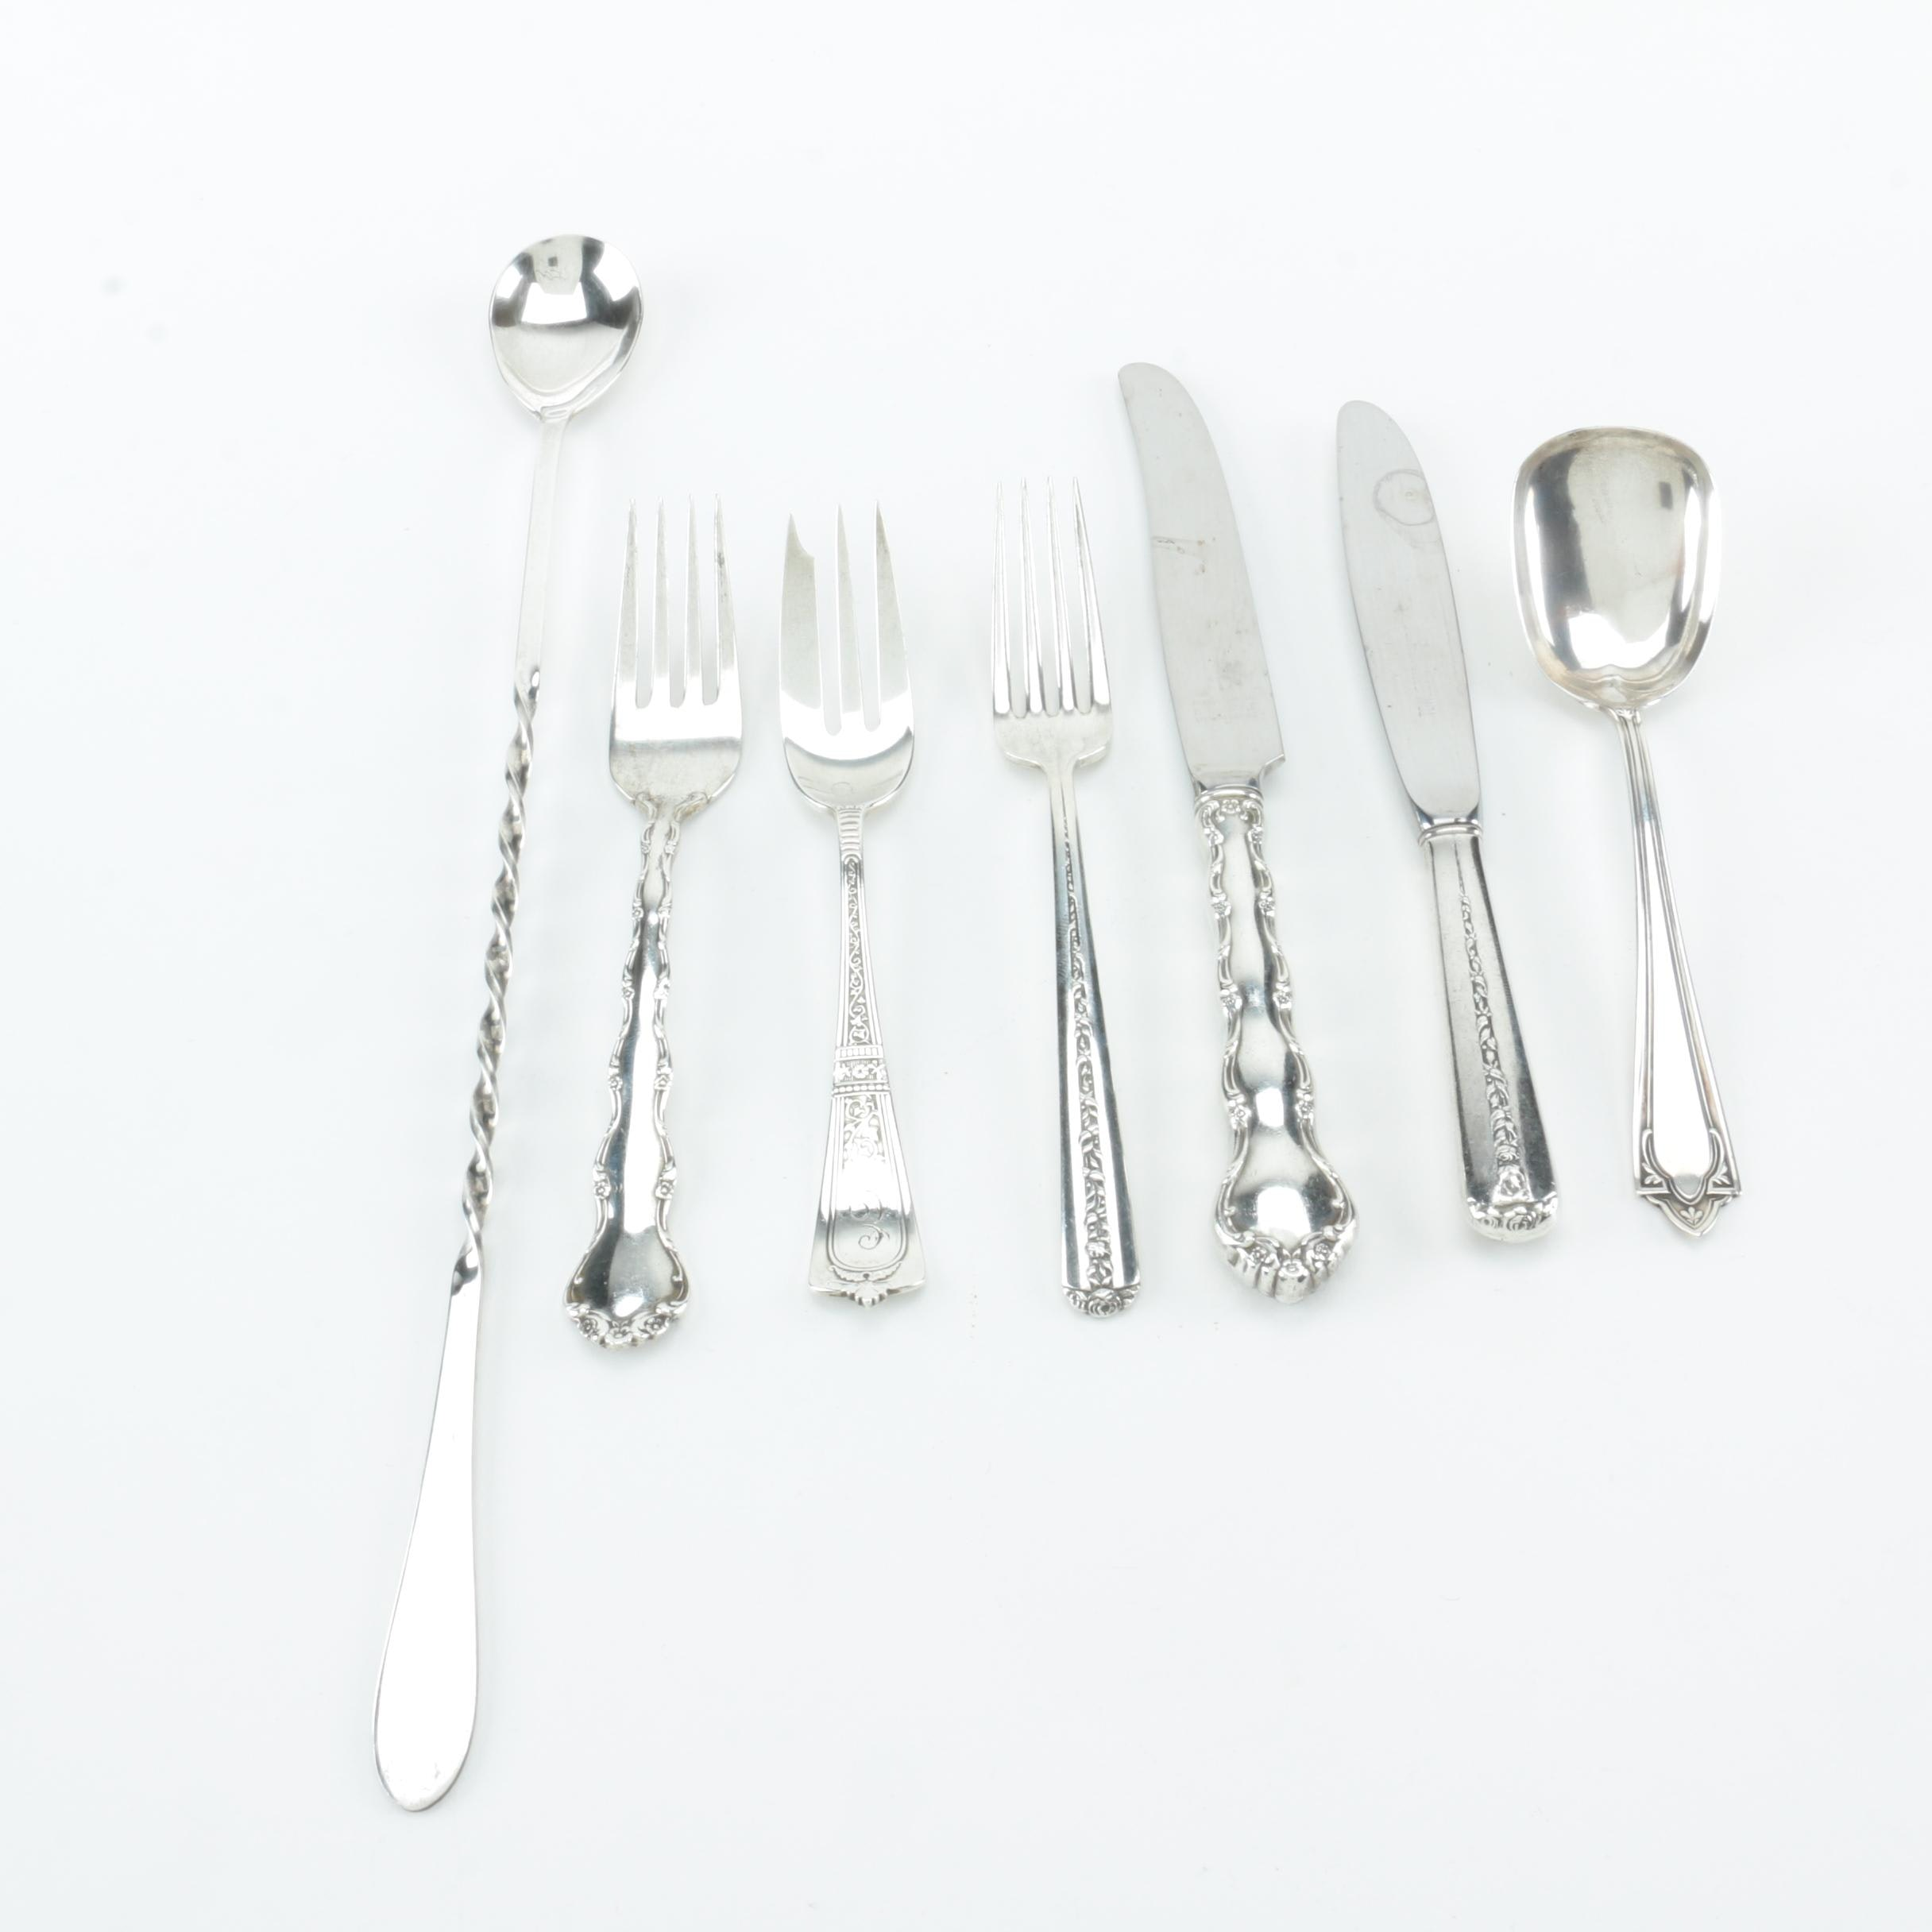 Gorham, Towle, and Other Sterling Silver Flatware